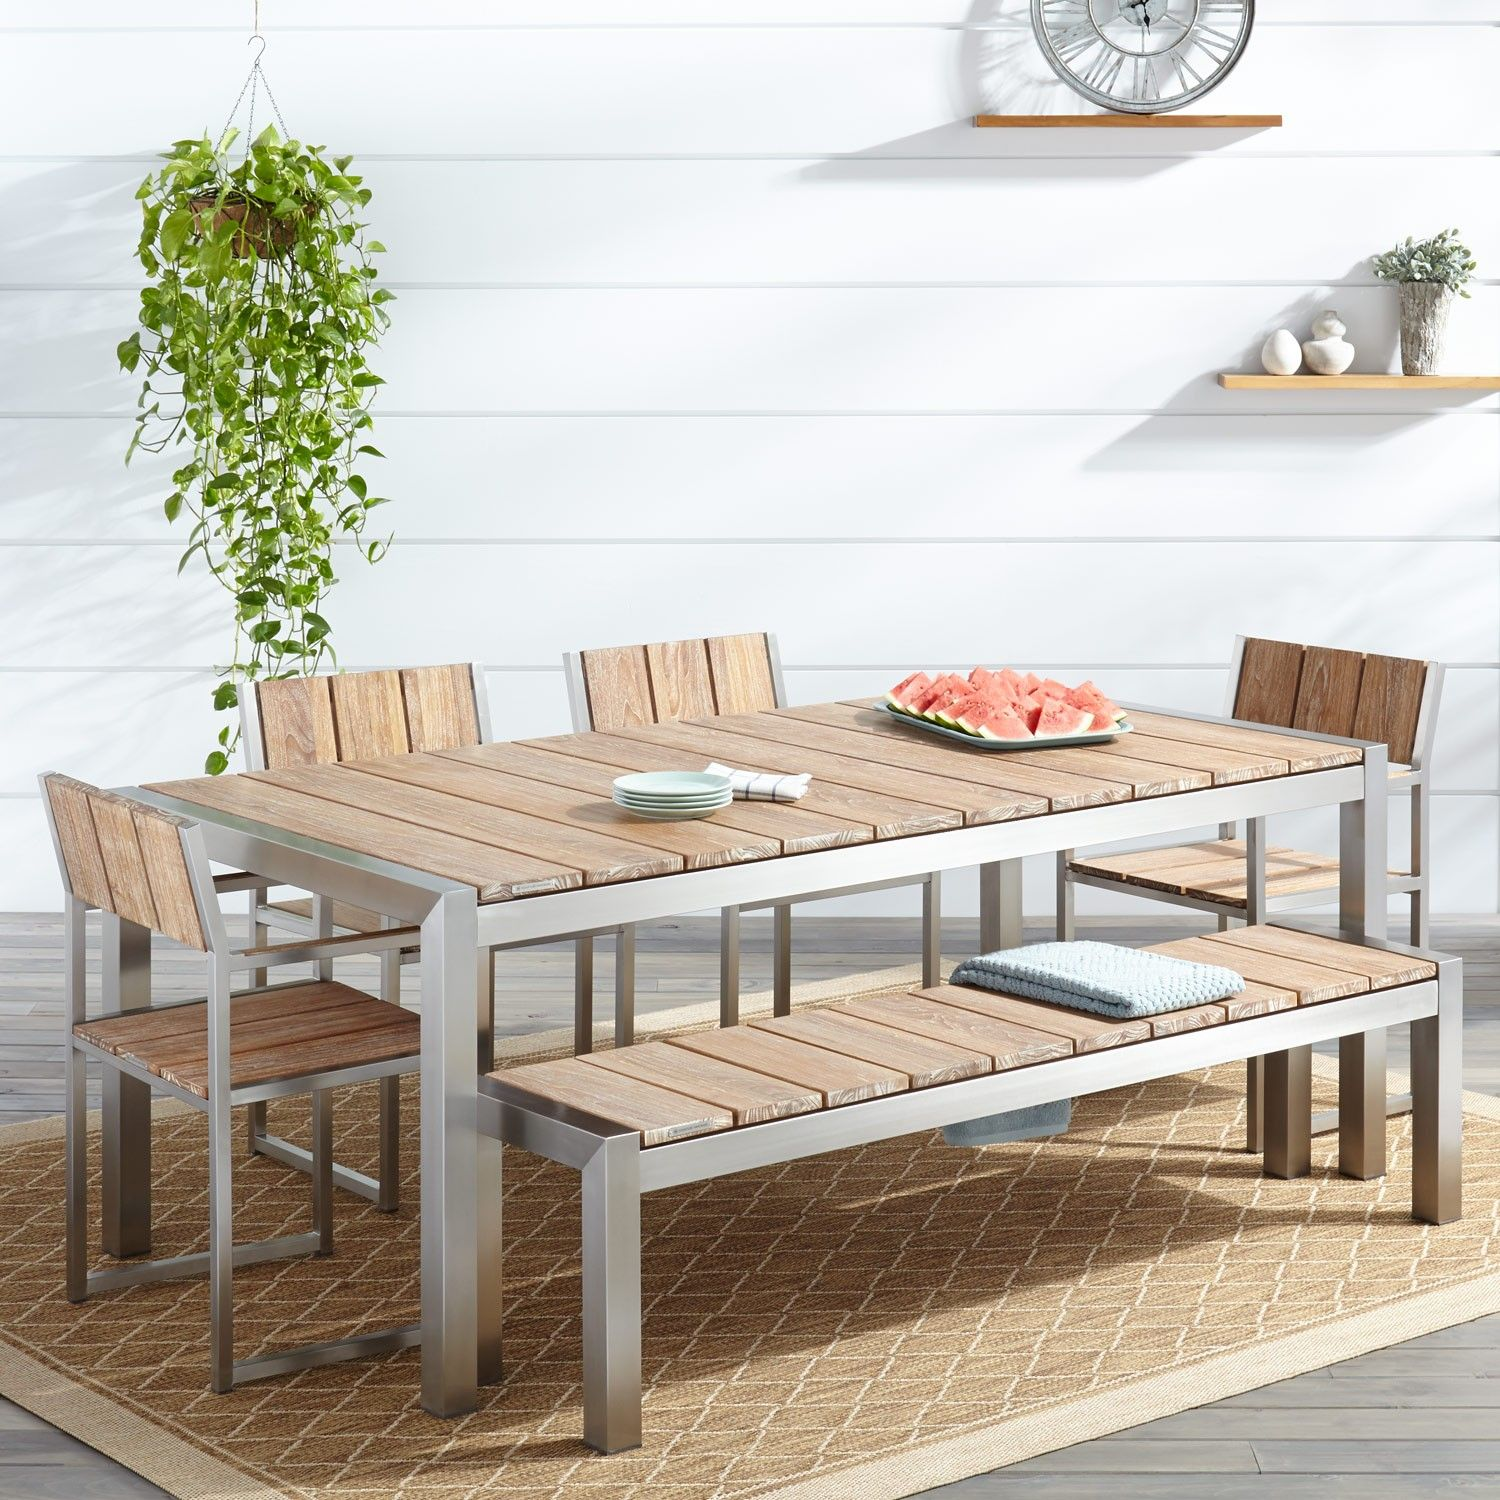 Macon 6 piece rectangular teak outdoor dining table set whitewash